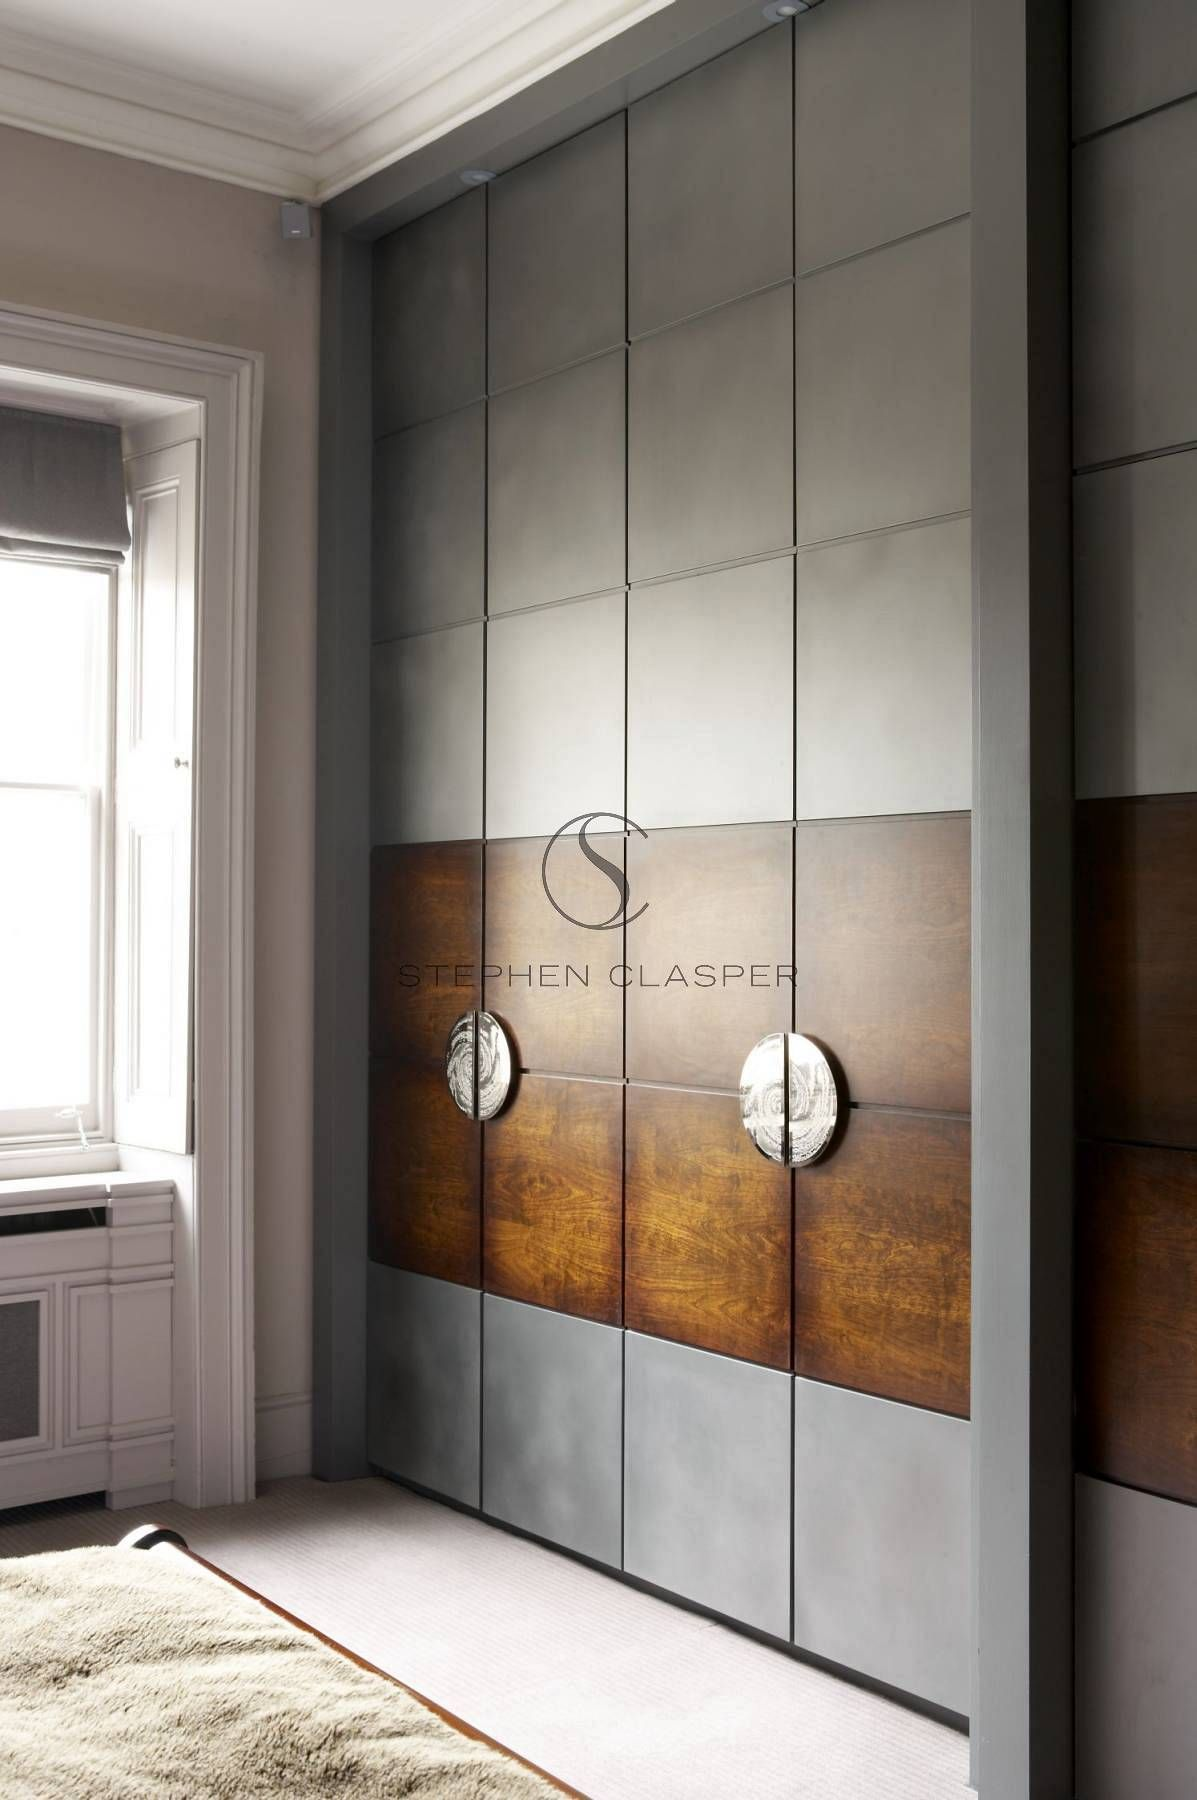 closet doors. Interior Design: Kensington - Stephen Clasper ...